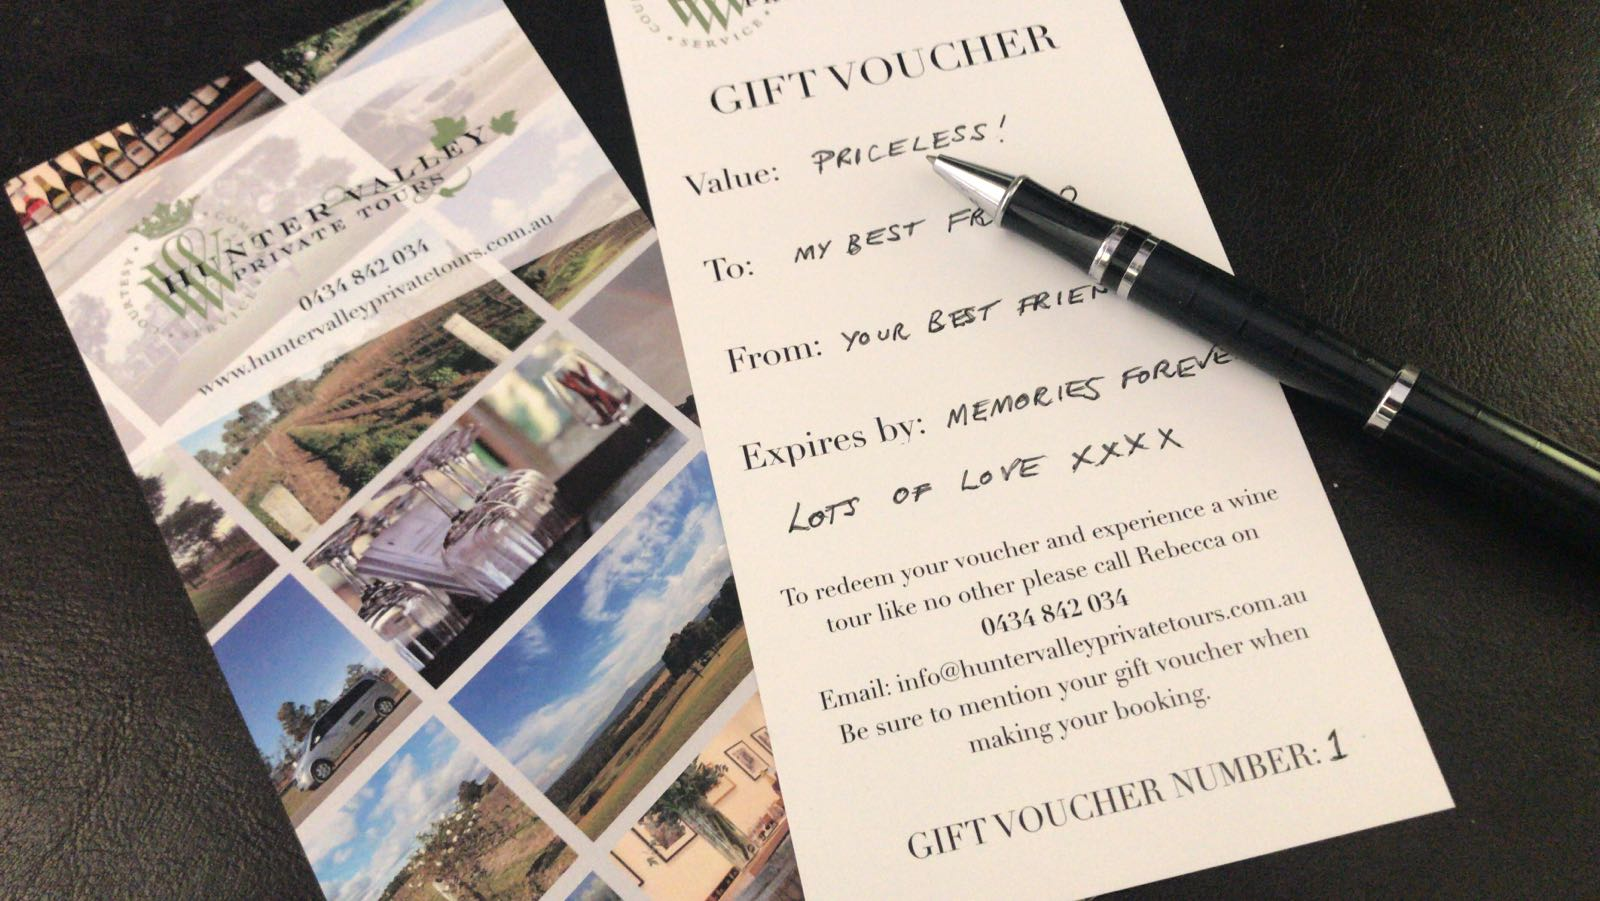 Yes, we do have Gift Vouchers!